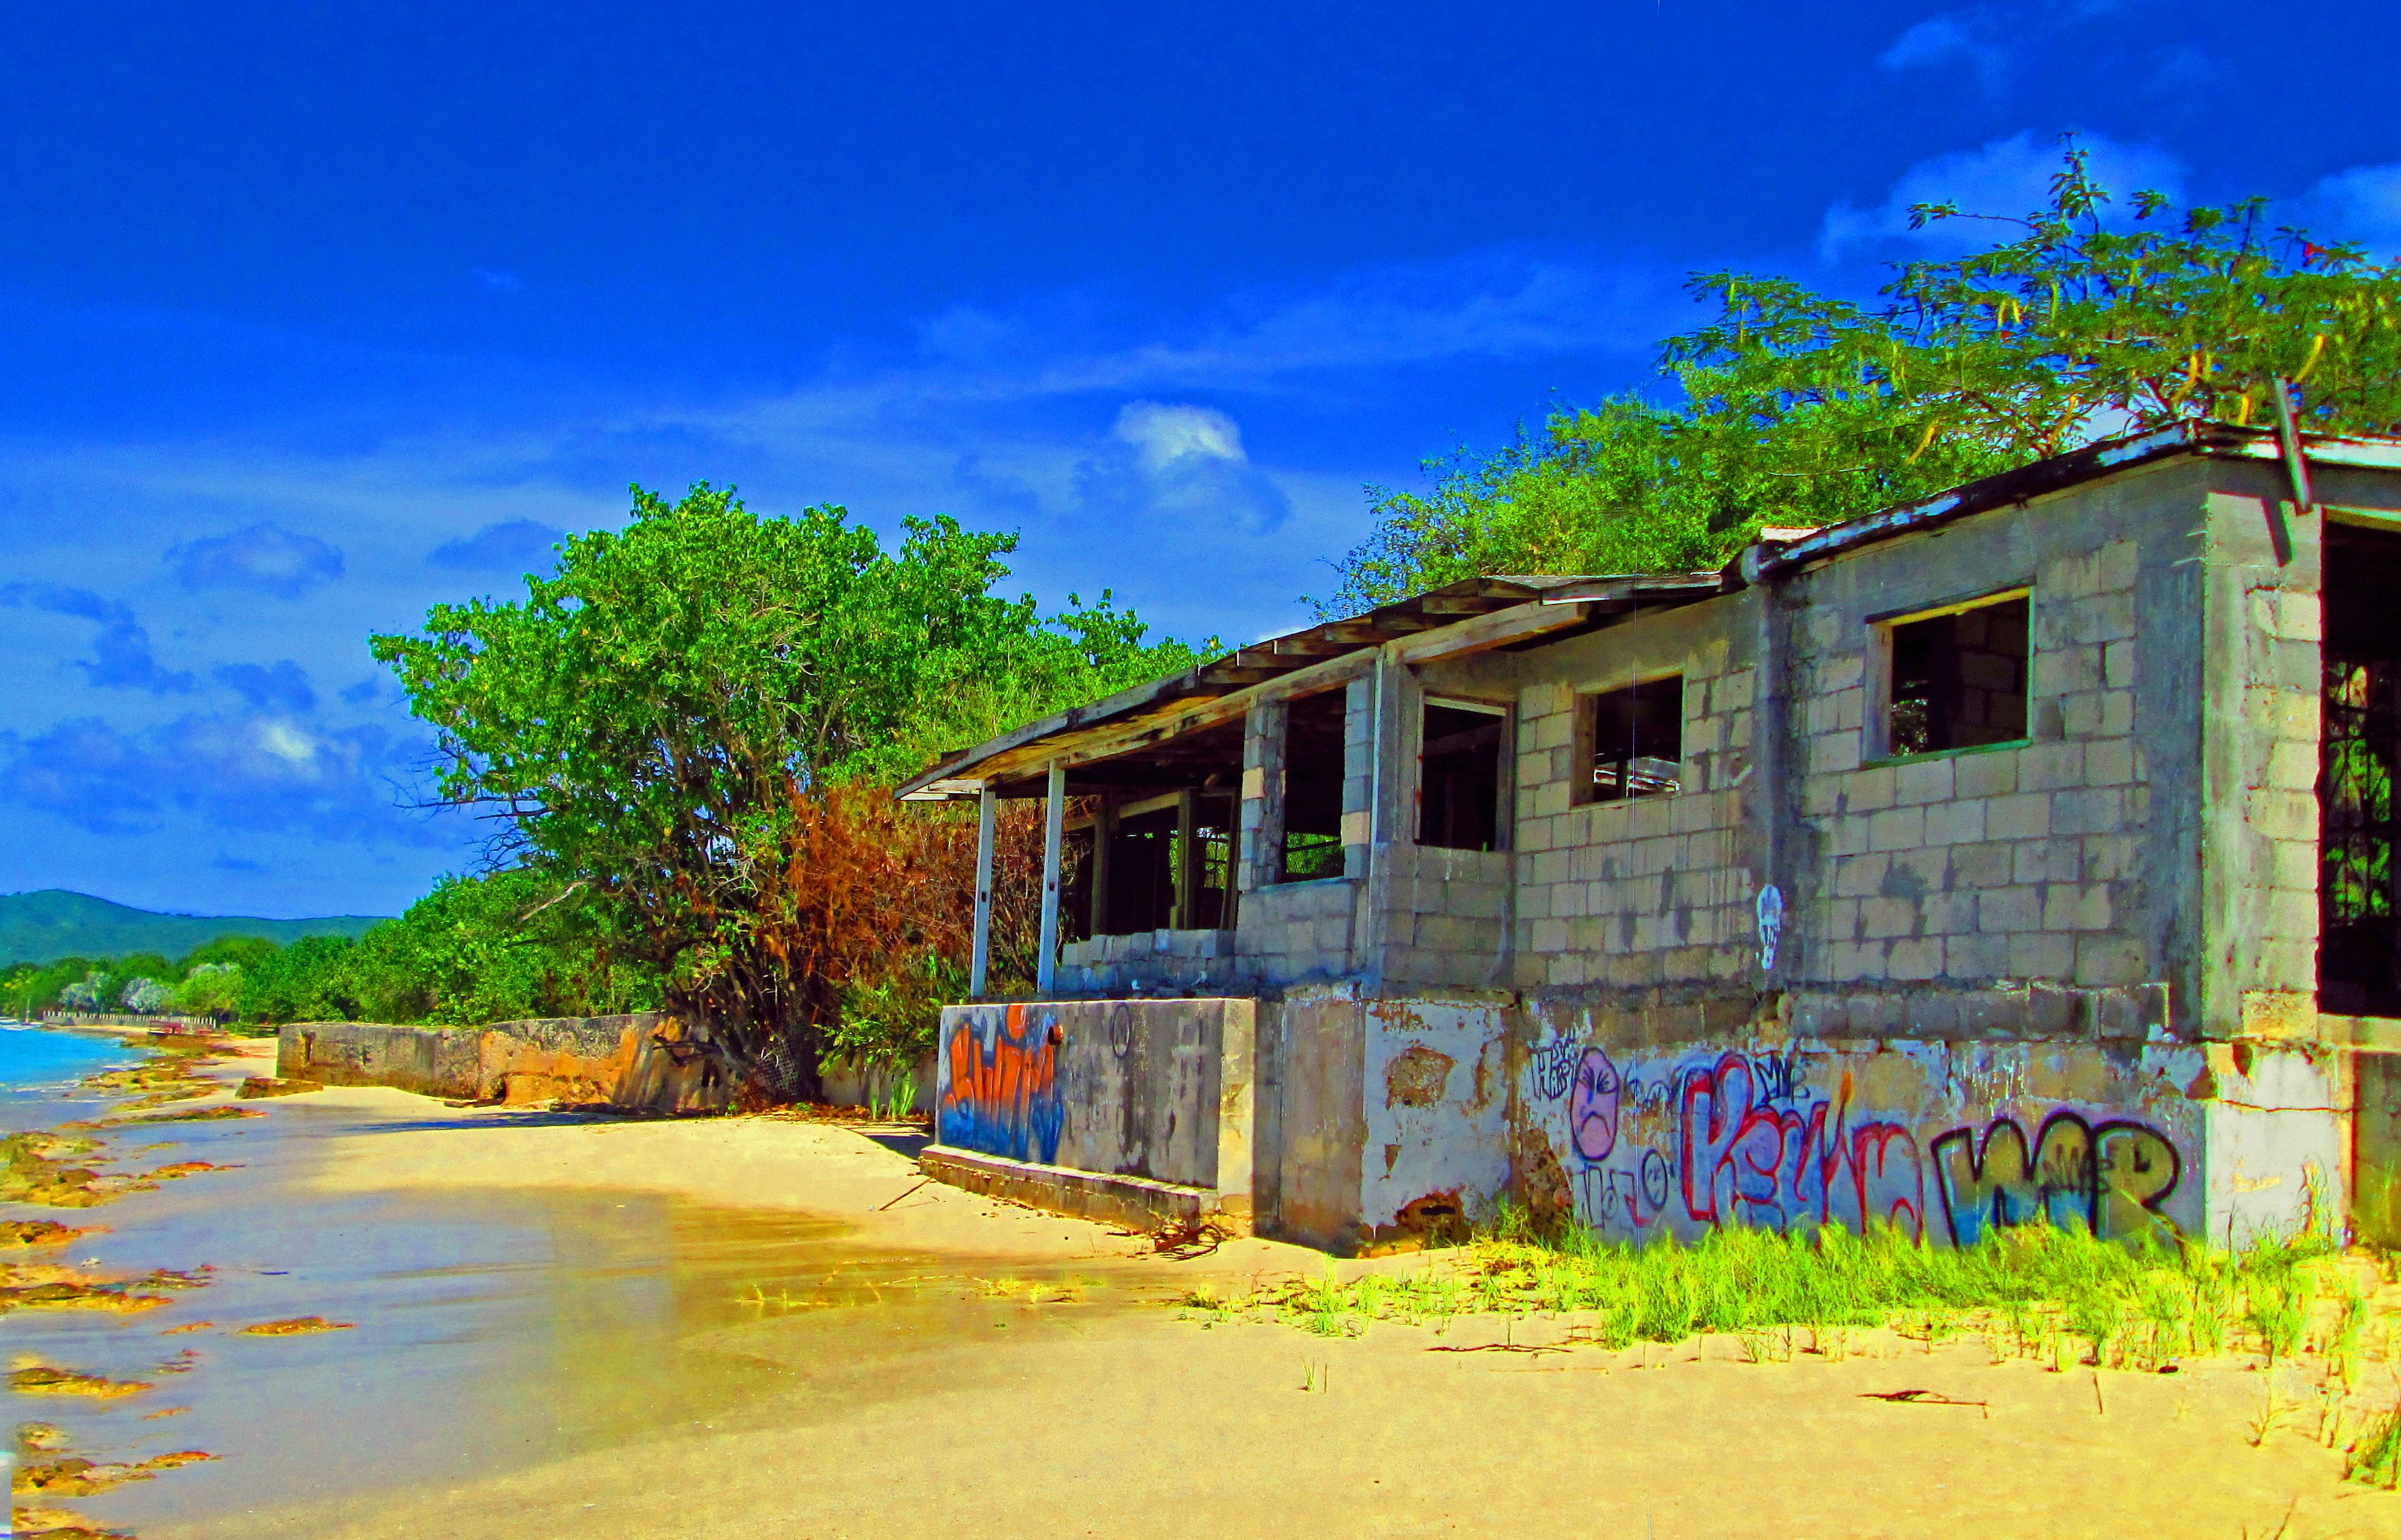 Graffiti-ed Caribbean Beach Building